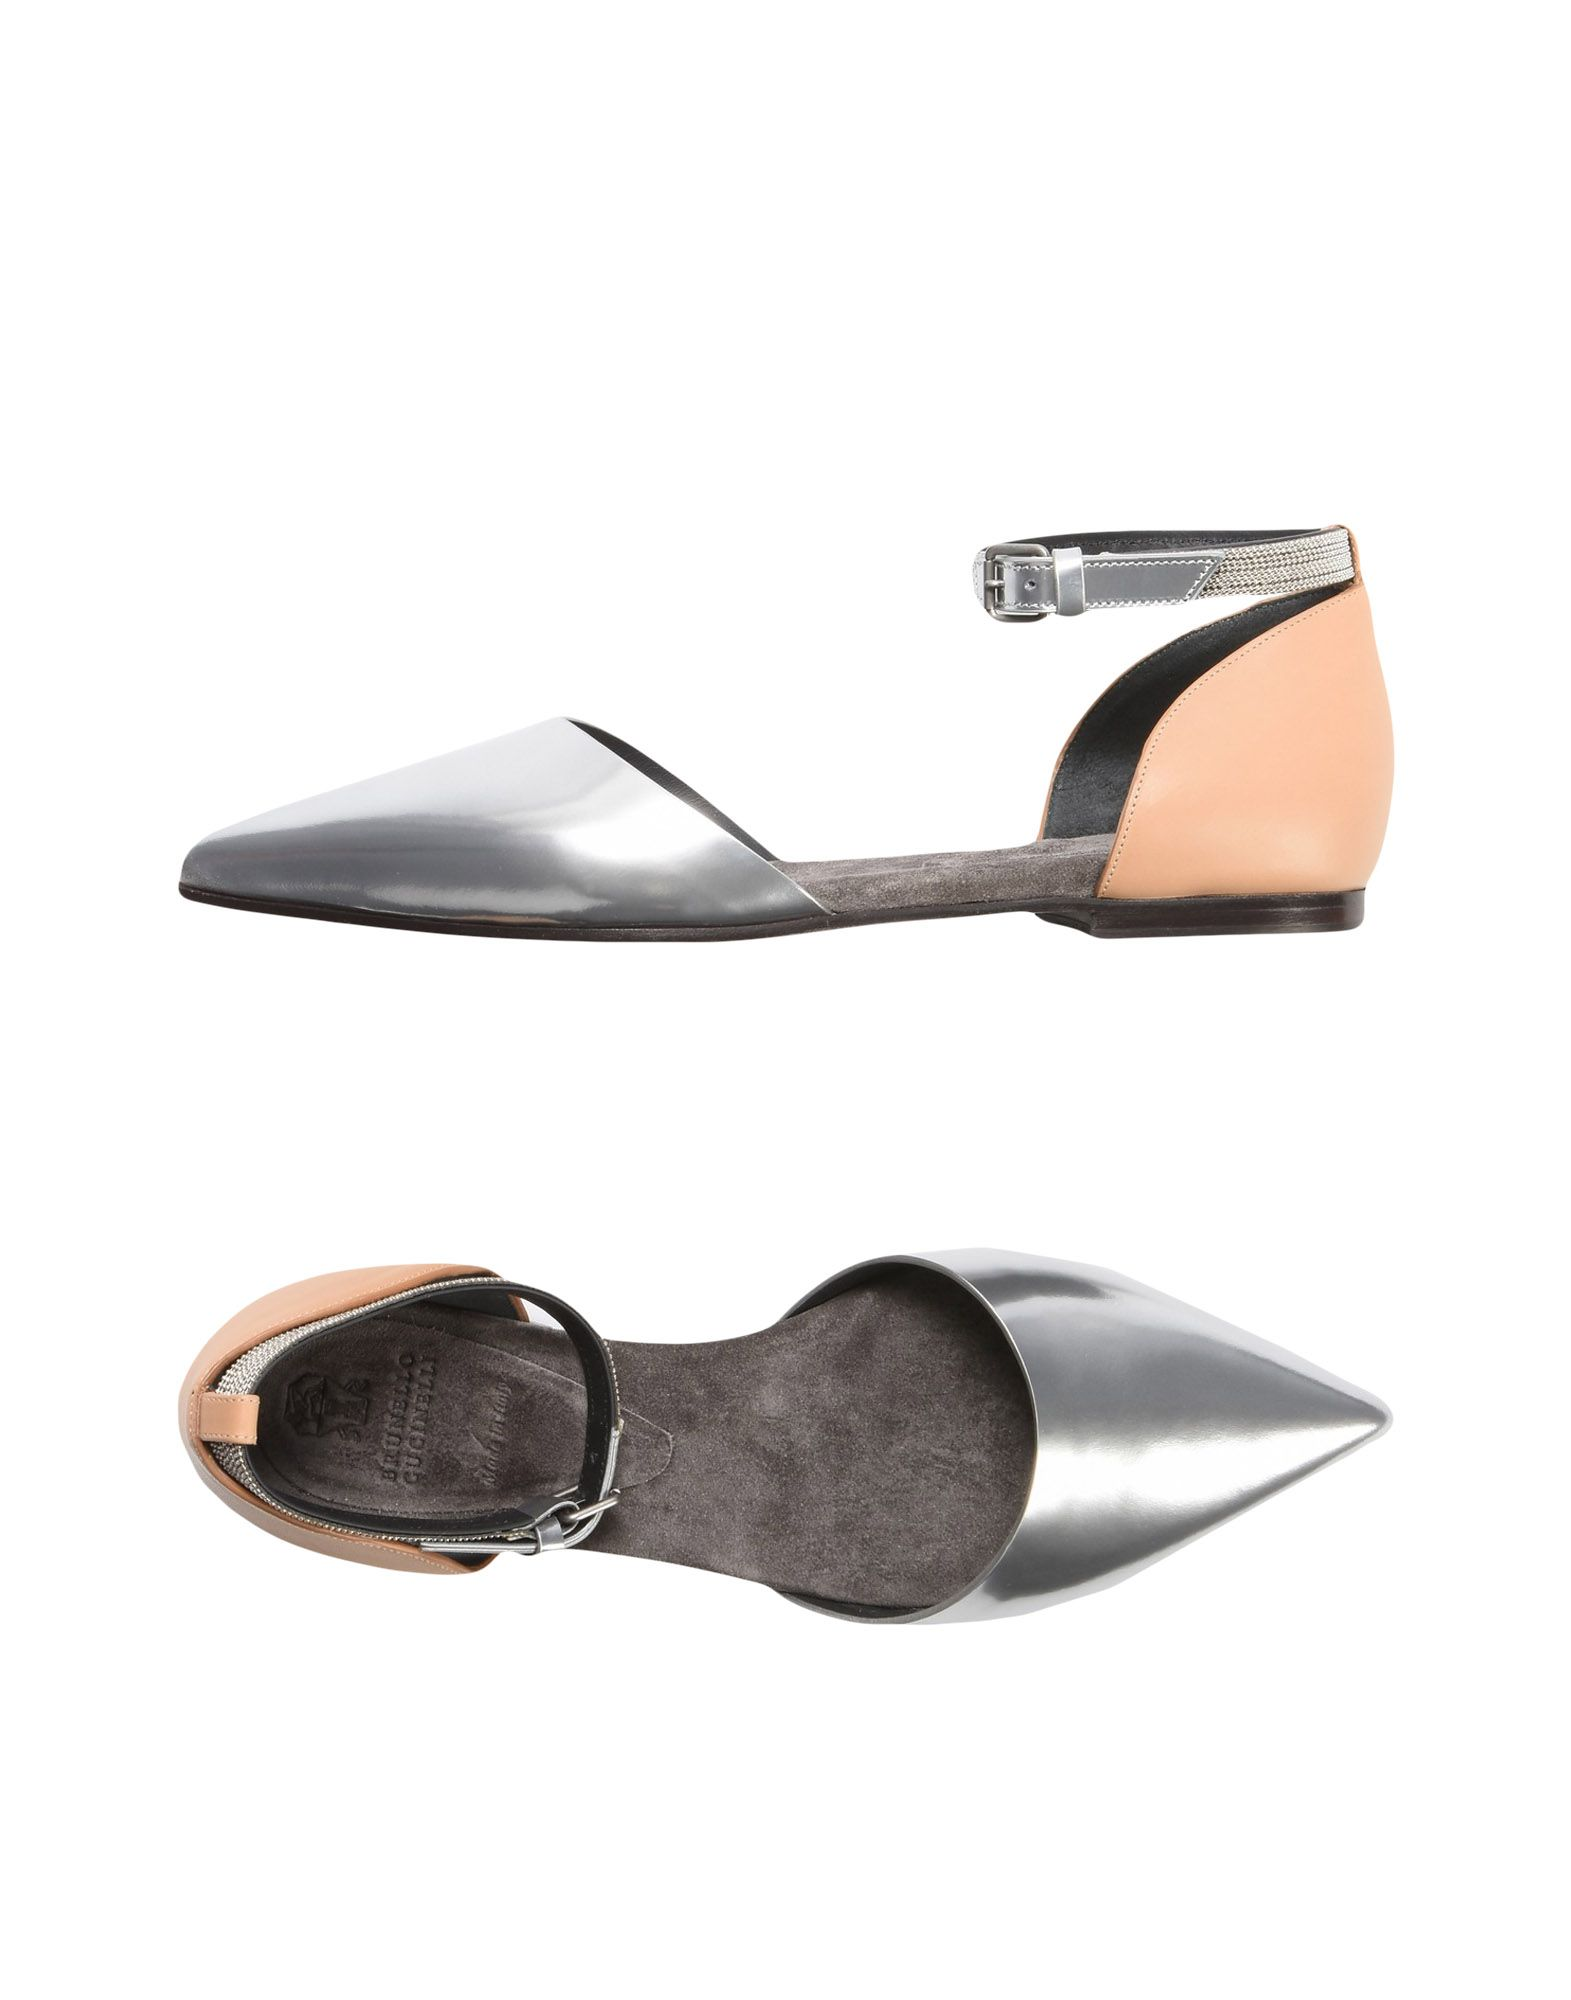 BRUNELLO CUCINELLI Ballet flats. laminated effect, metal applications, two-tone, buckling ankle strap closure, narrow toeline, flat, leather lining, leather/rubber sole, contains non-textile parts of animal origin. 100% Soft Leather